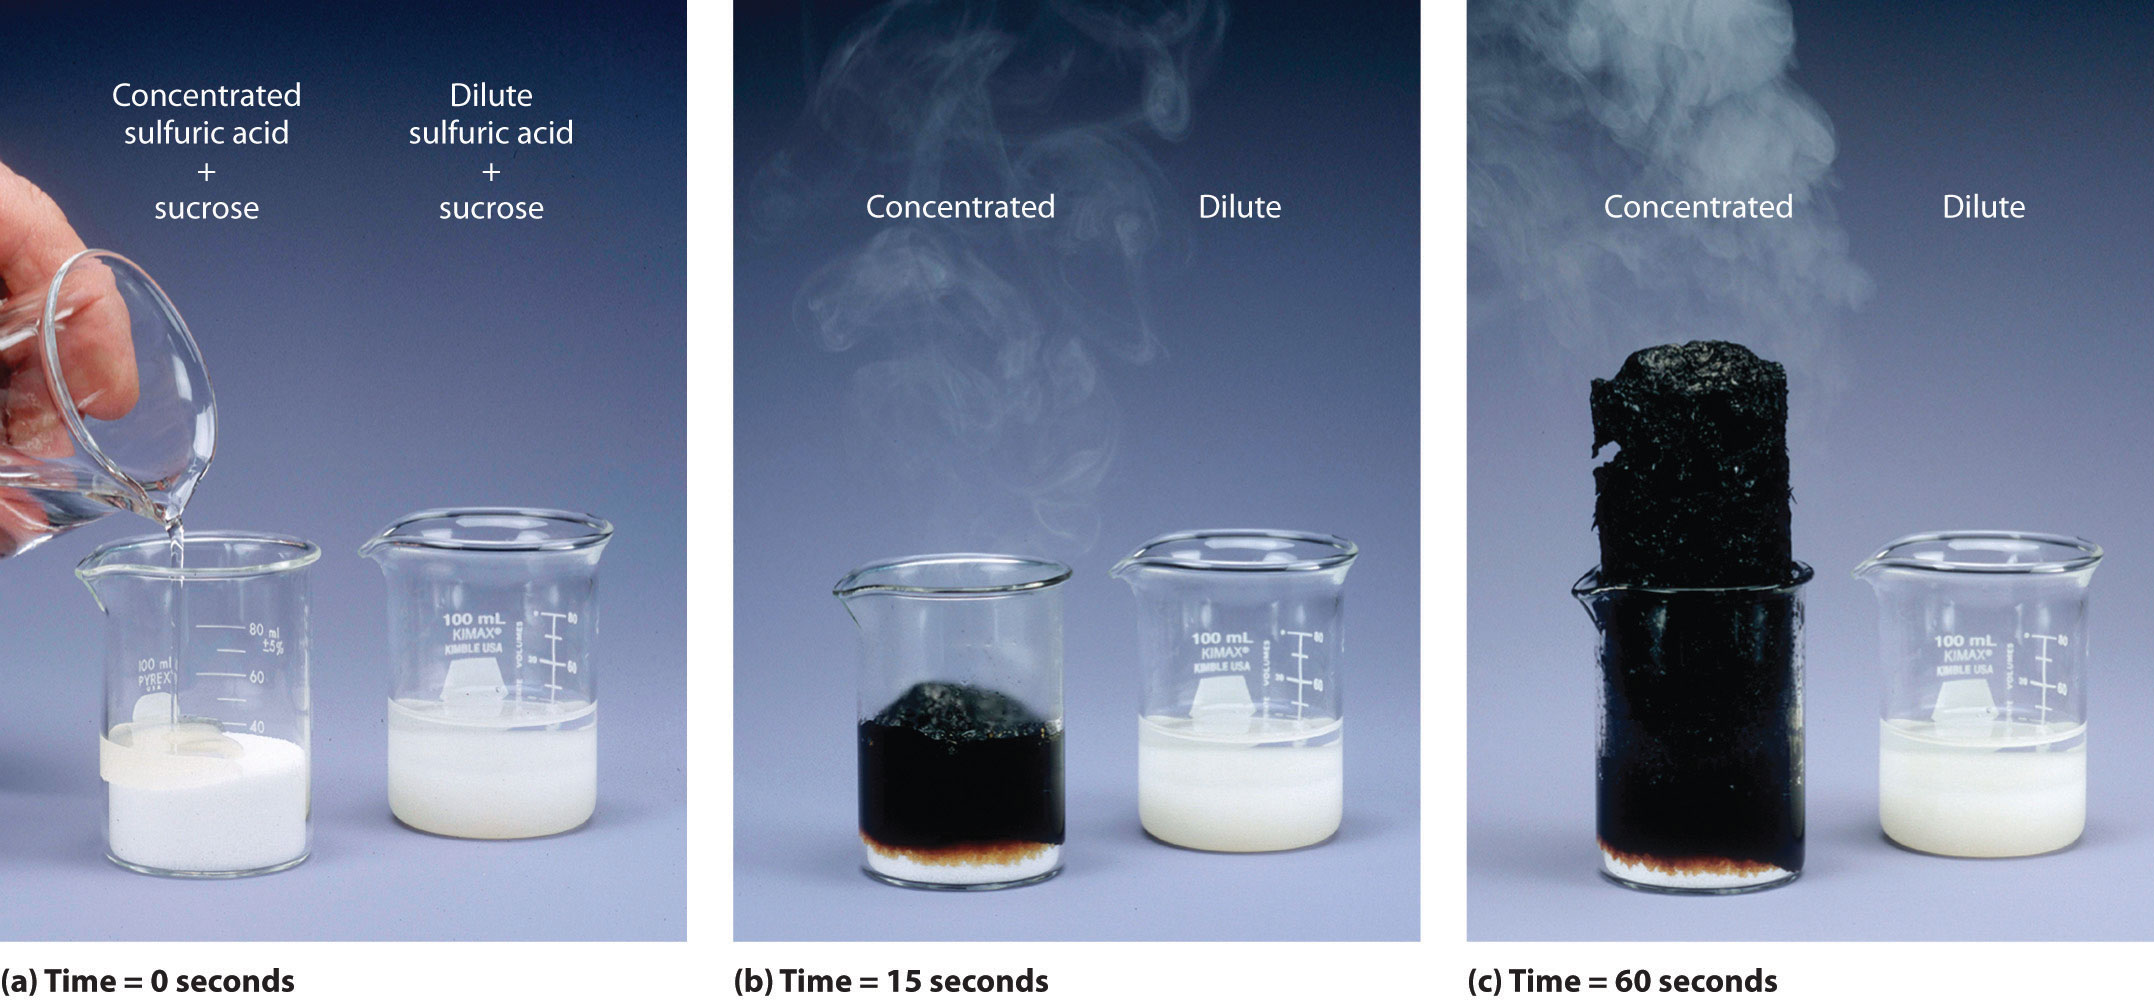 effects of exposure to sulfurous acid Some time after exposure to sulfurous acid and can last for months or years: cancer hazard other long-term effects  sulfurous acid can irritate the lungs.